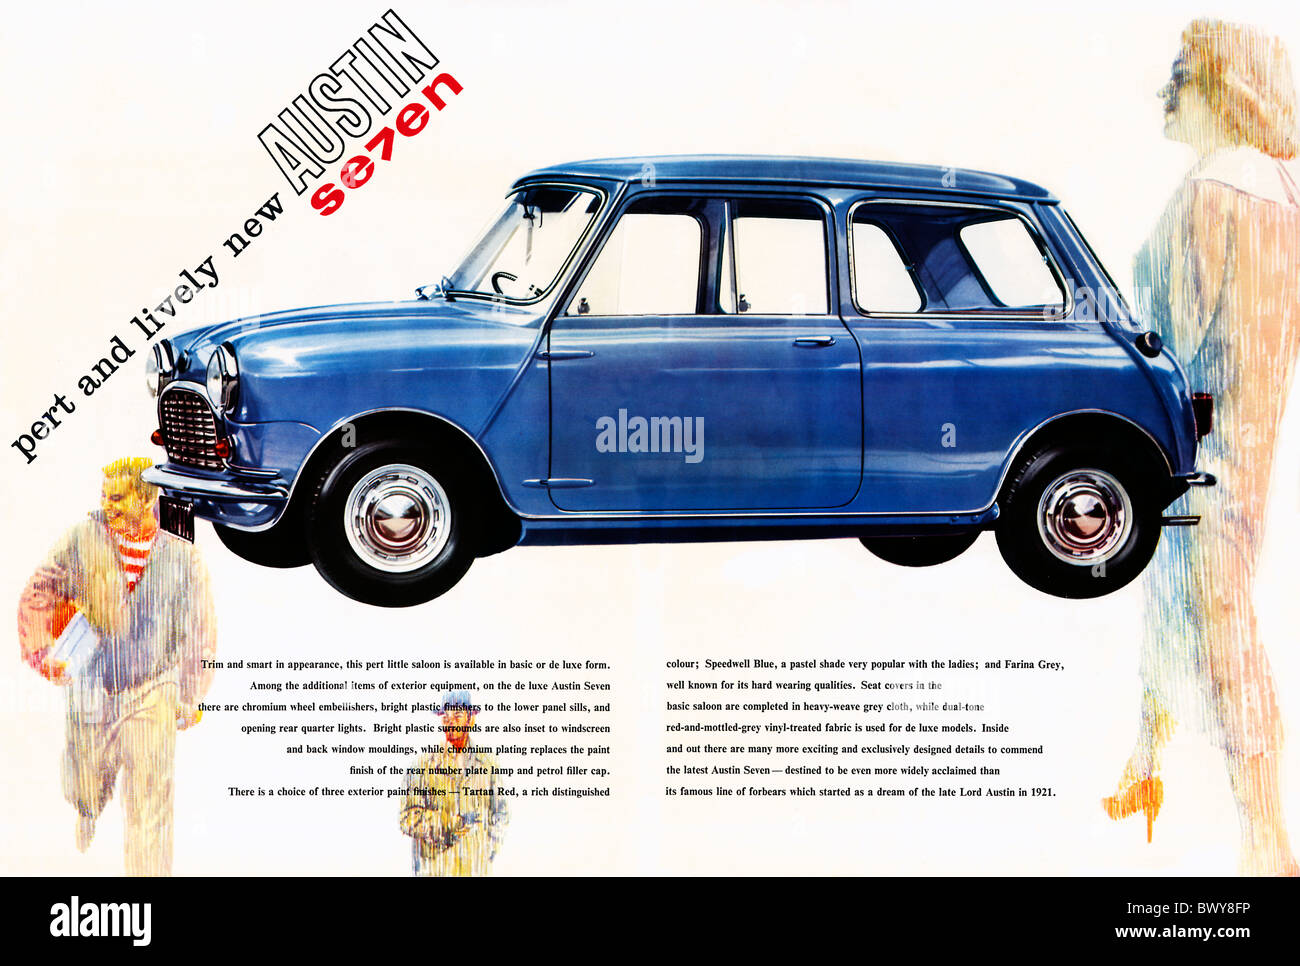 Austin Seven, 1959 brochure page for the Pert And Lively new British car which became the iconic Mini - Stock Image